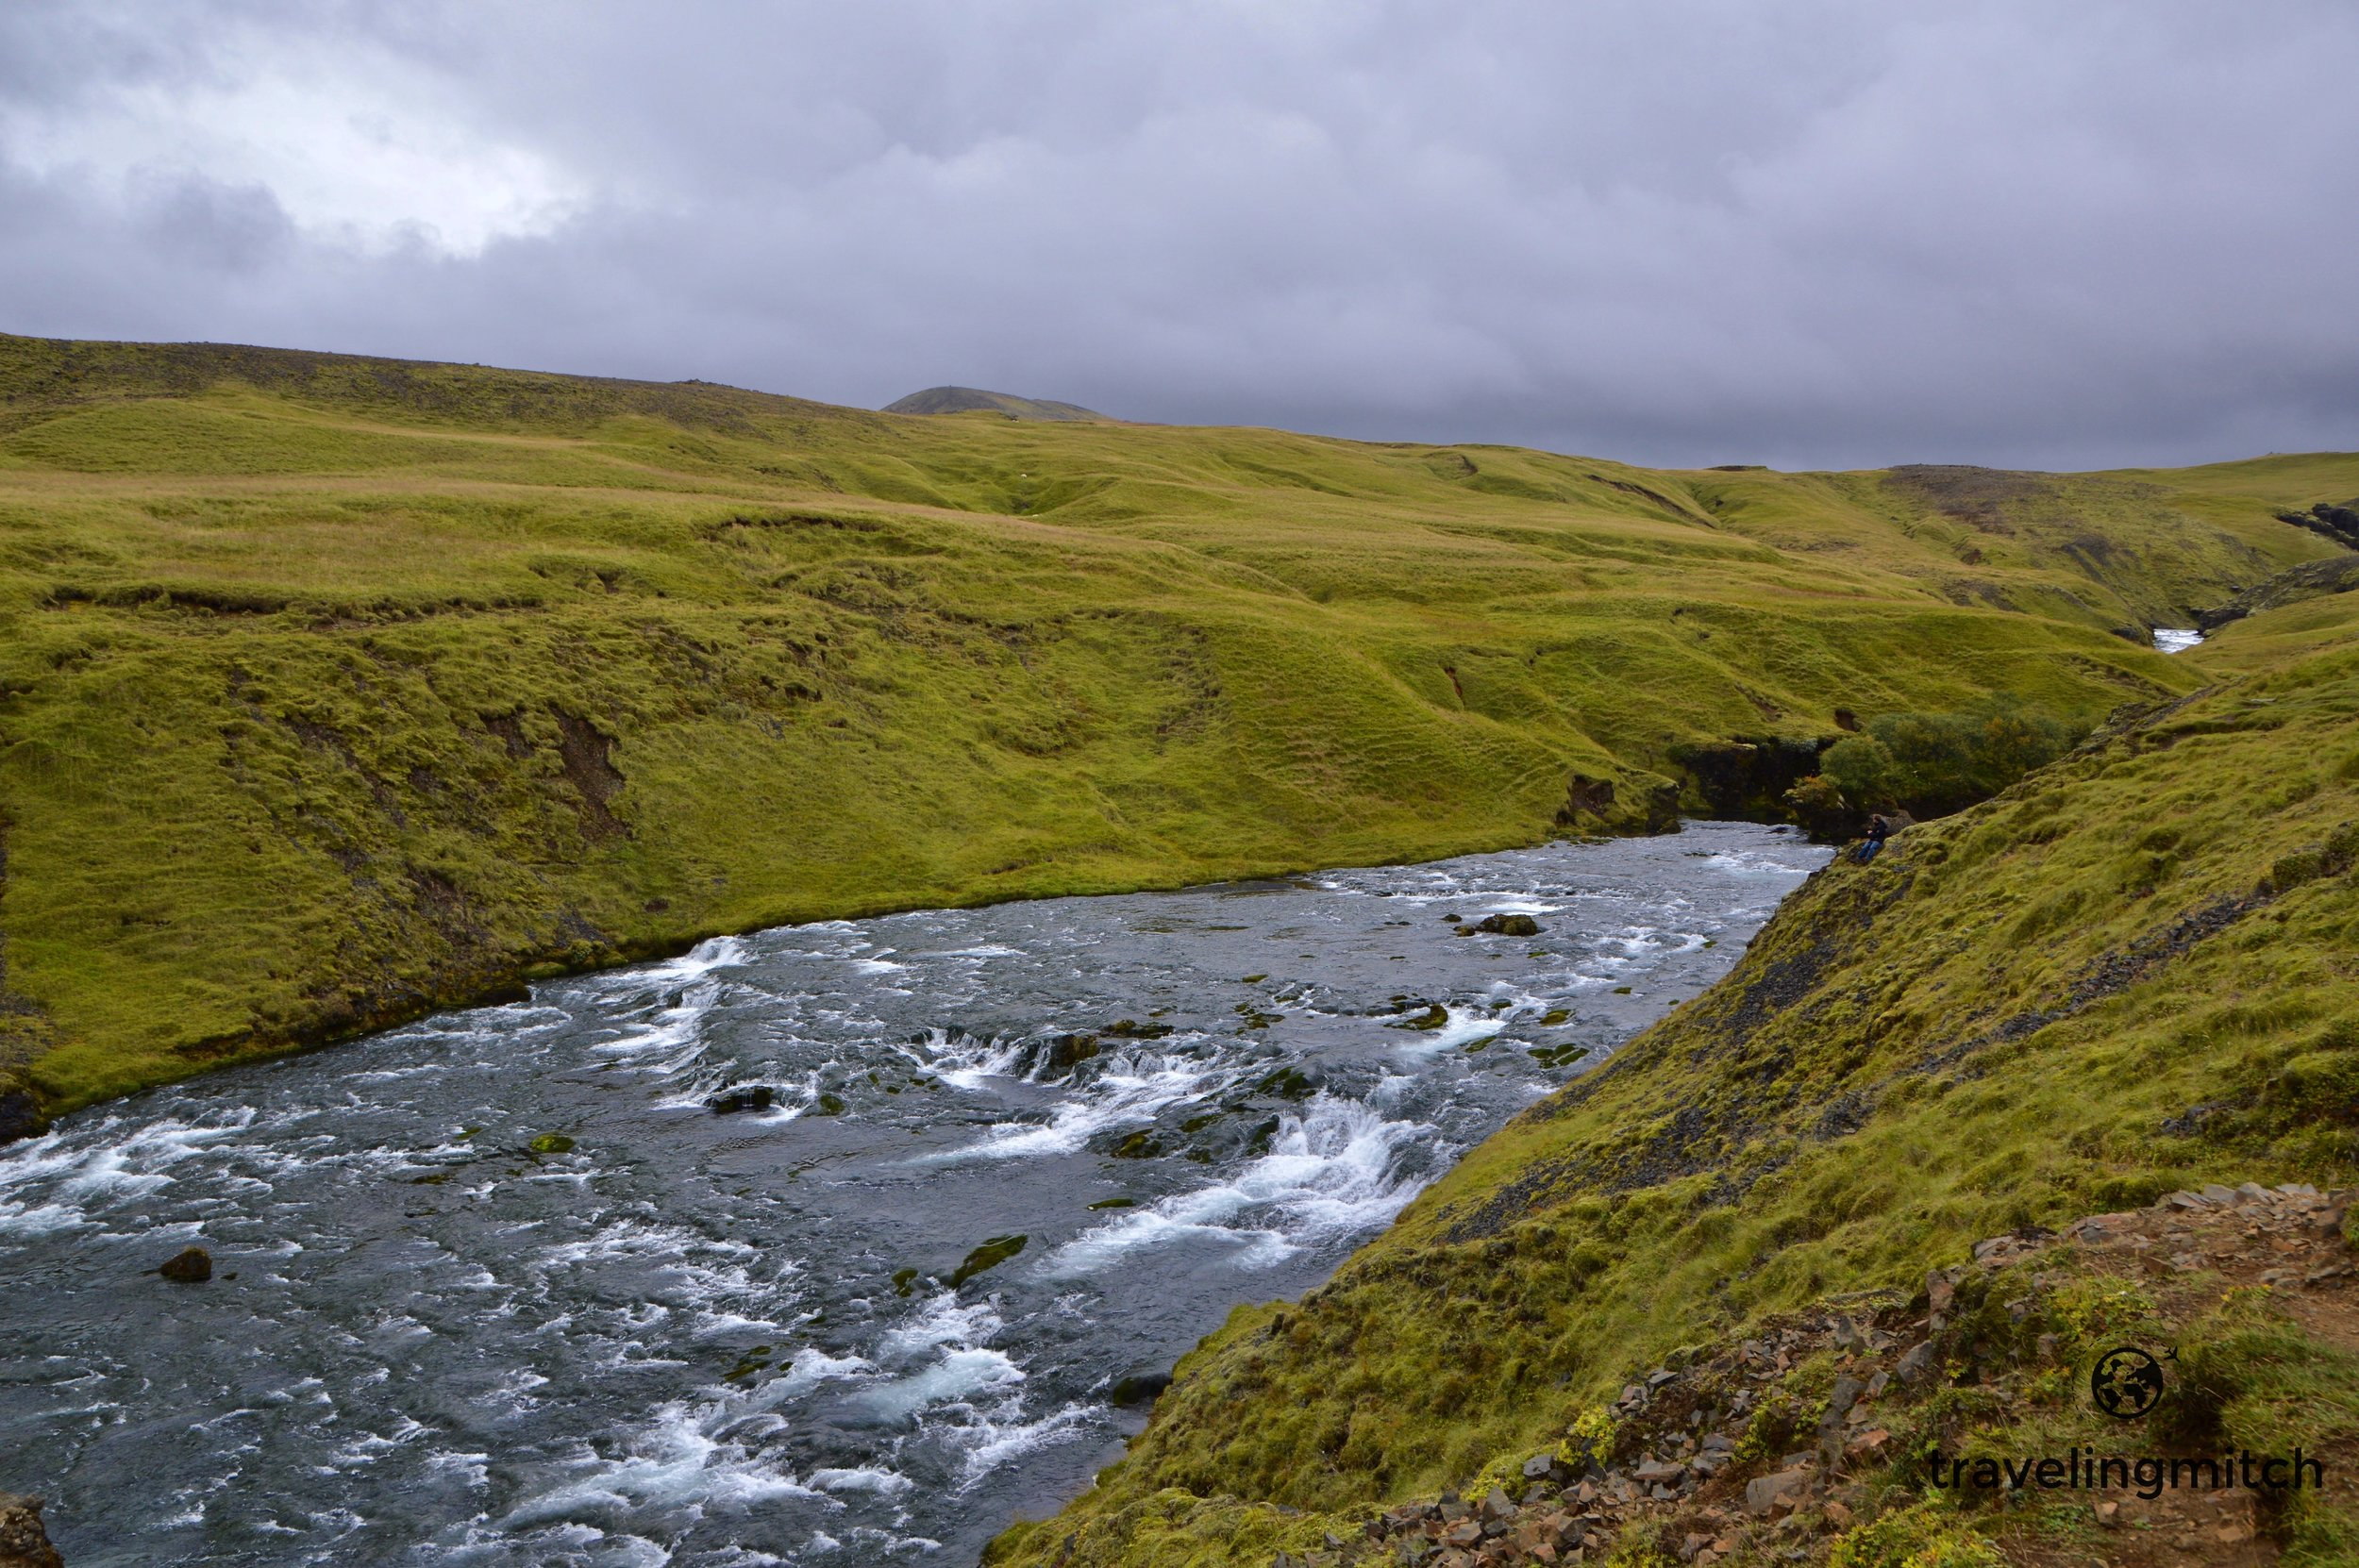 Prince Caspian once sailed this river.